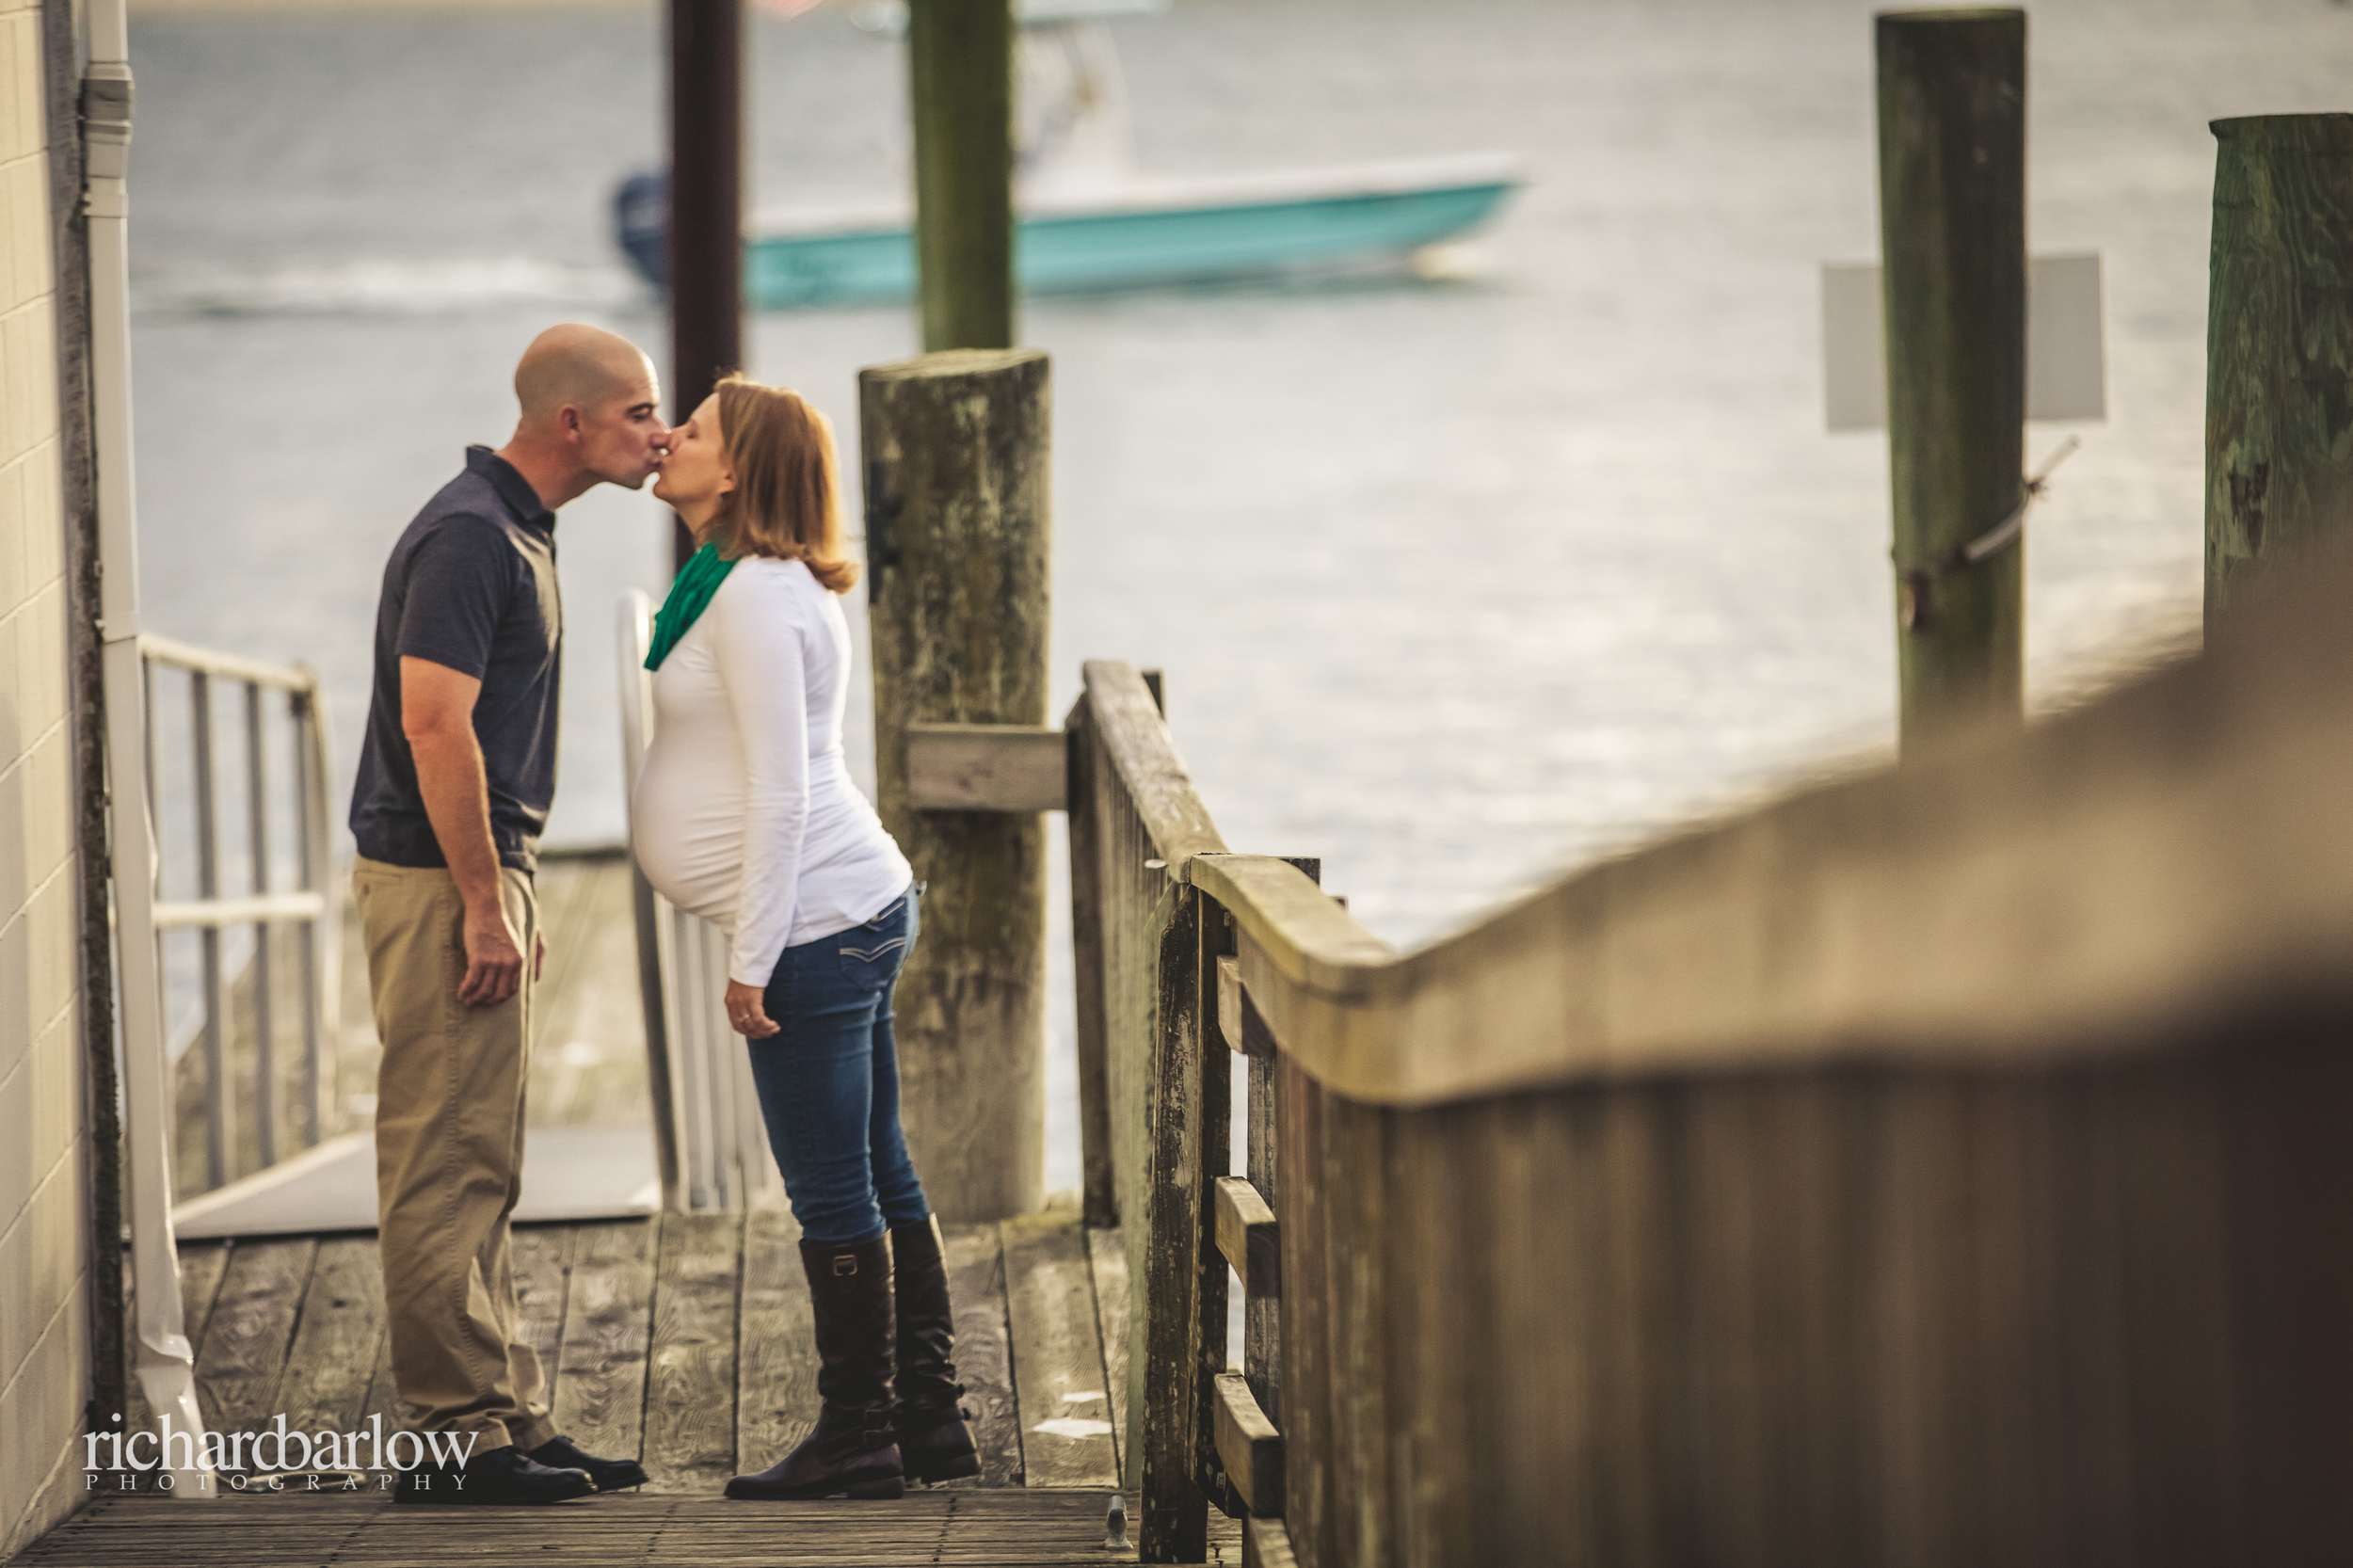 richard barlow photography - Sarah Maternity Session - Beaufort waterfront-13.jpg